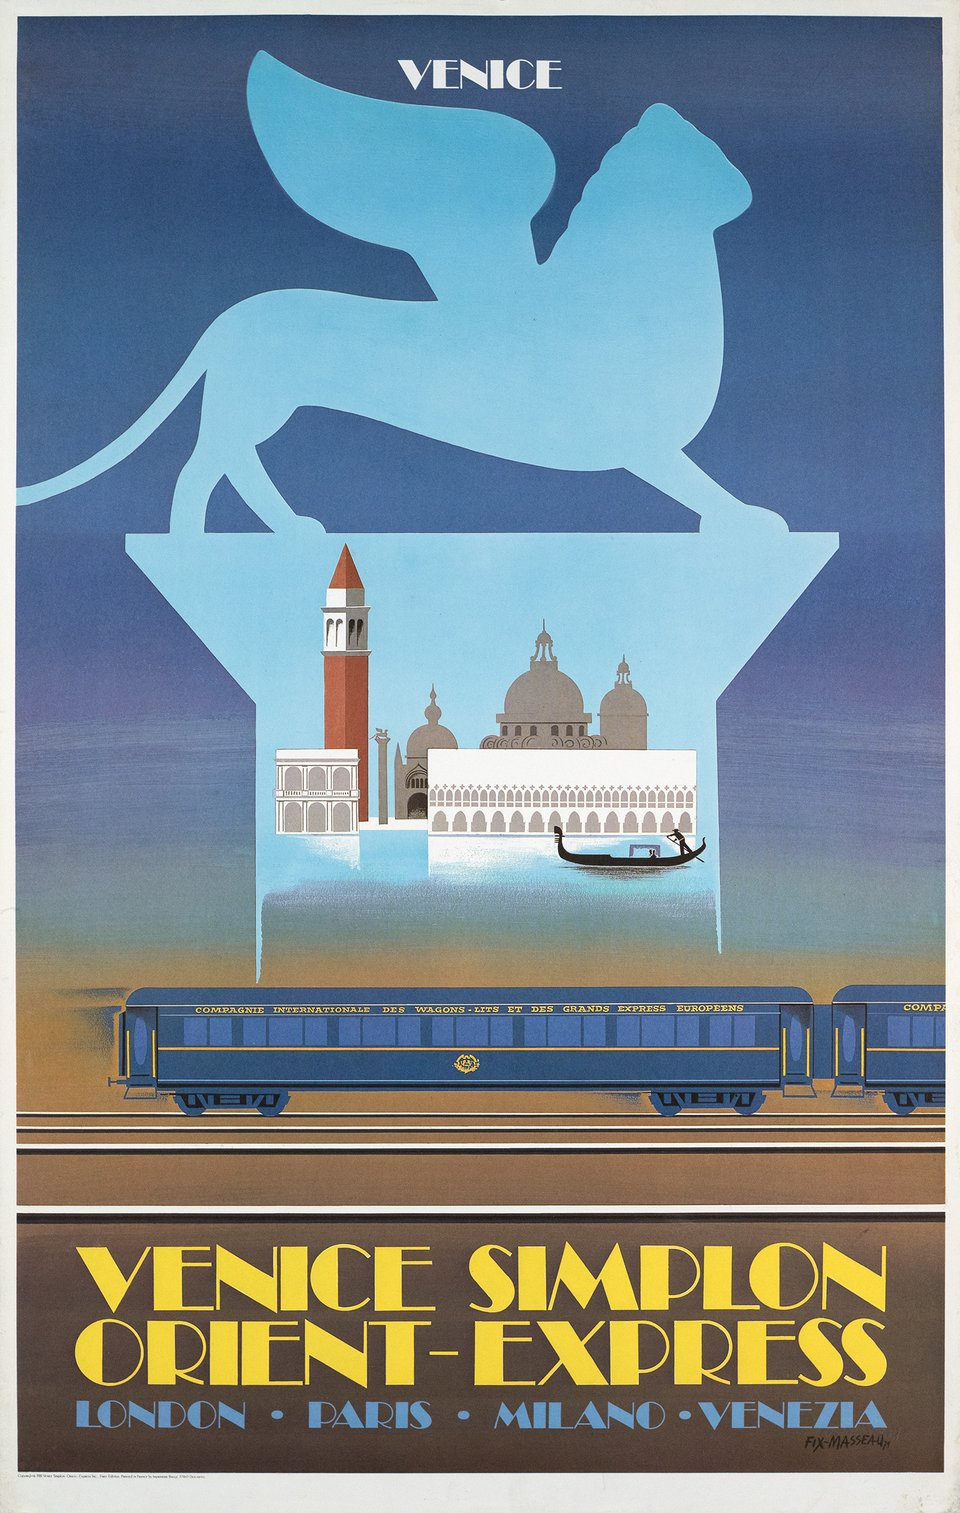 Venice Simplon Orient Express, London Paris Venice – Vintage poster – Pierre FIX-MASSEAU – 1981